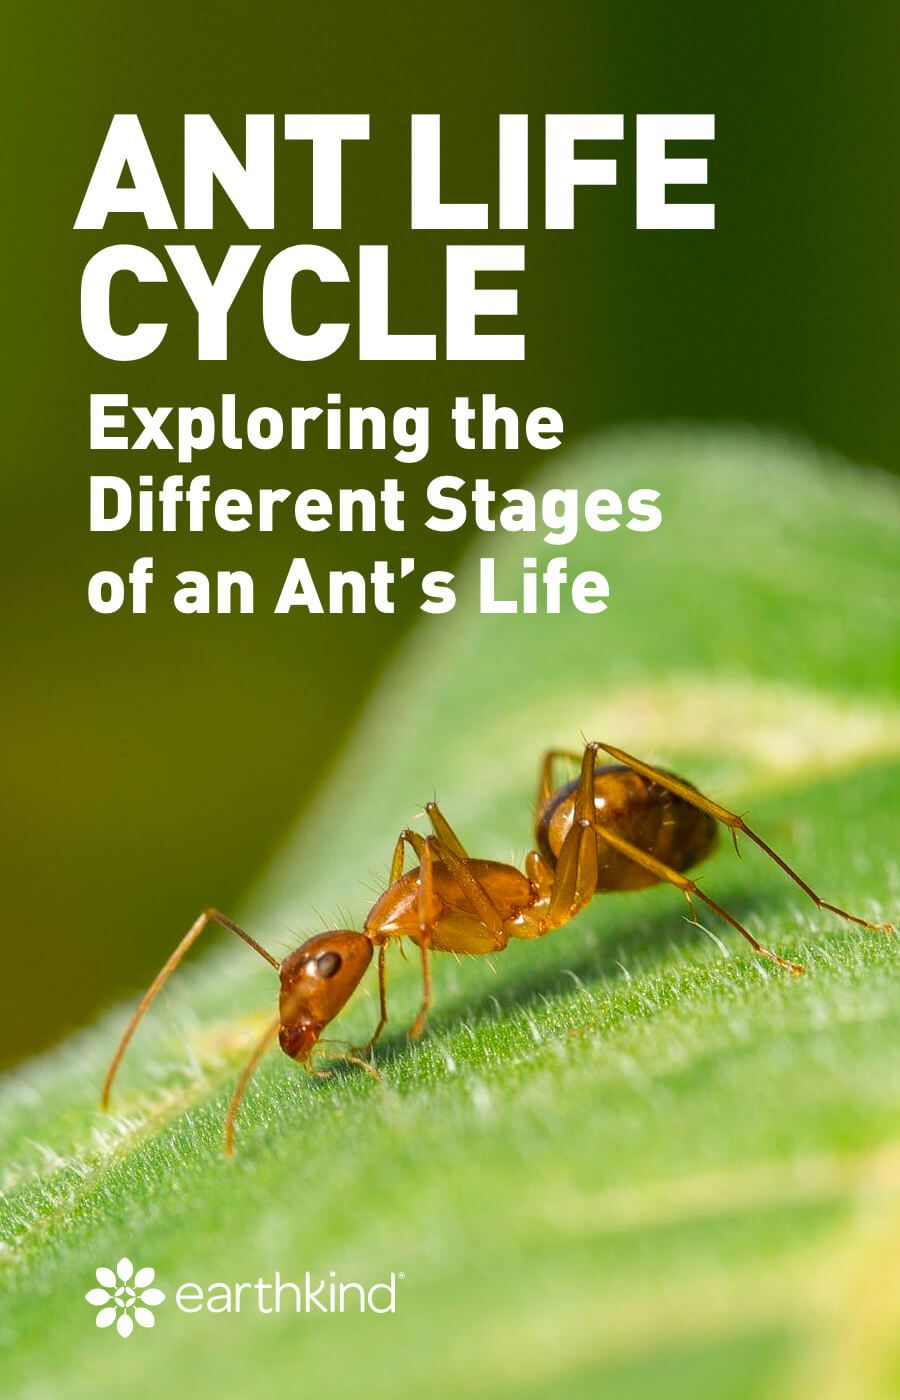 Ant Life Cycle Exploring the Different Stages of an Ant